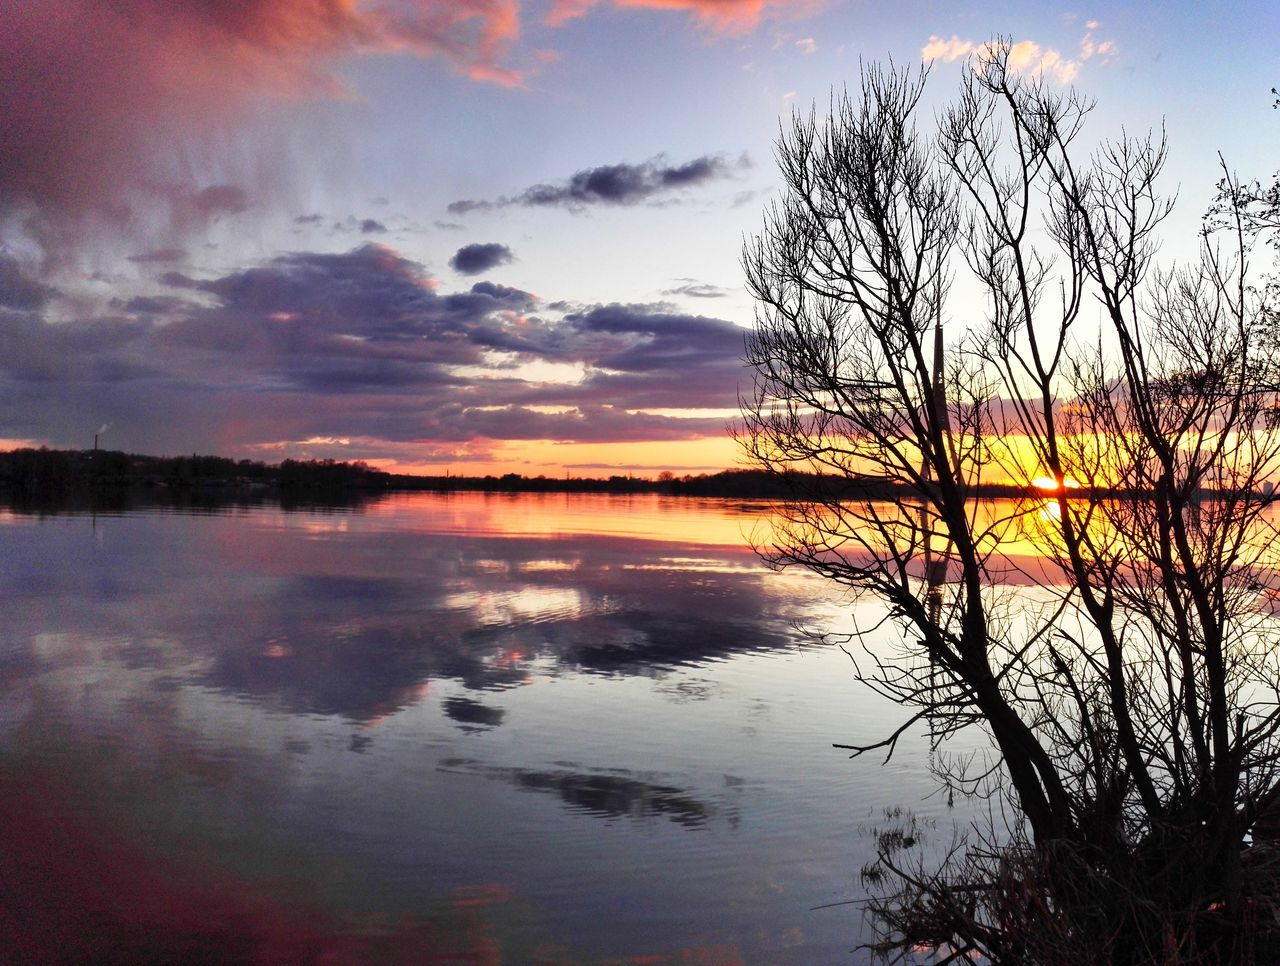 Reflection Sunset Sky Nature Scenics Cloud - Sky Beauty In Nature Water Tranquility Tree Landscape Horizon Over Water City Sky_collection River Water_collection Sunset_collection